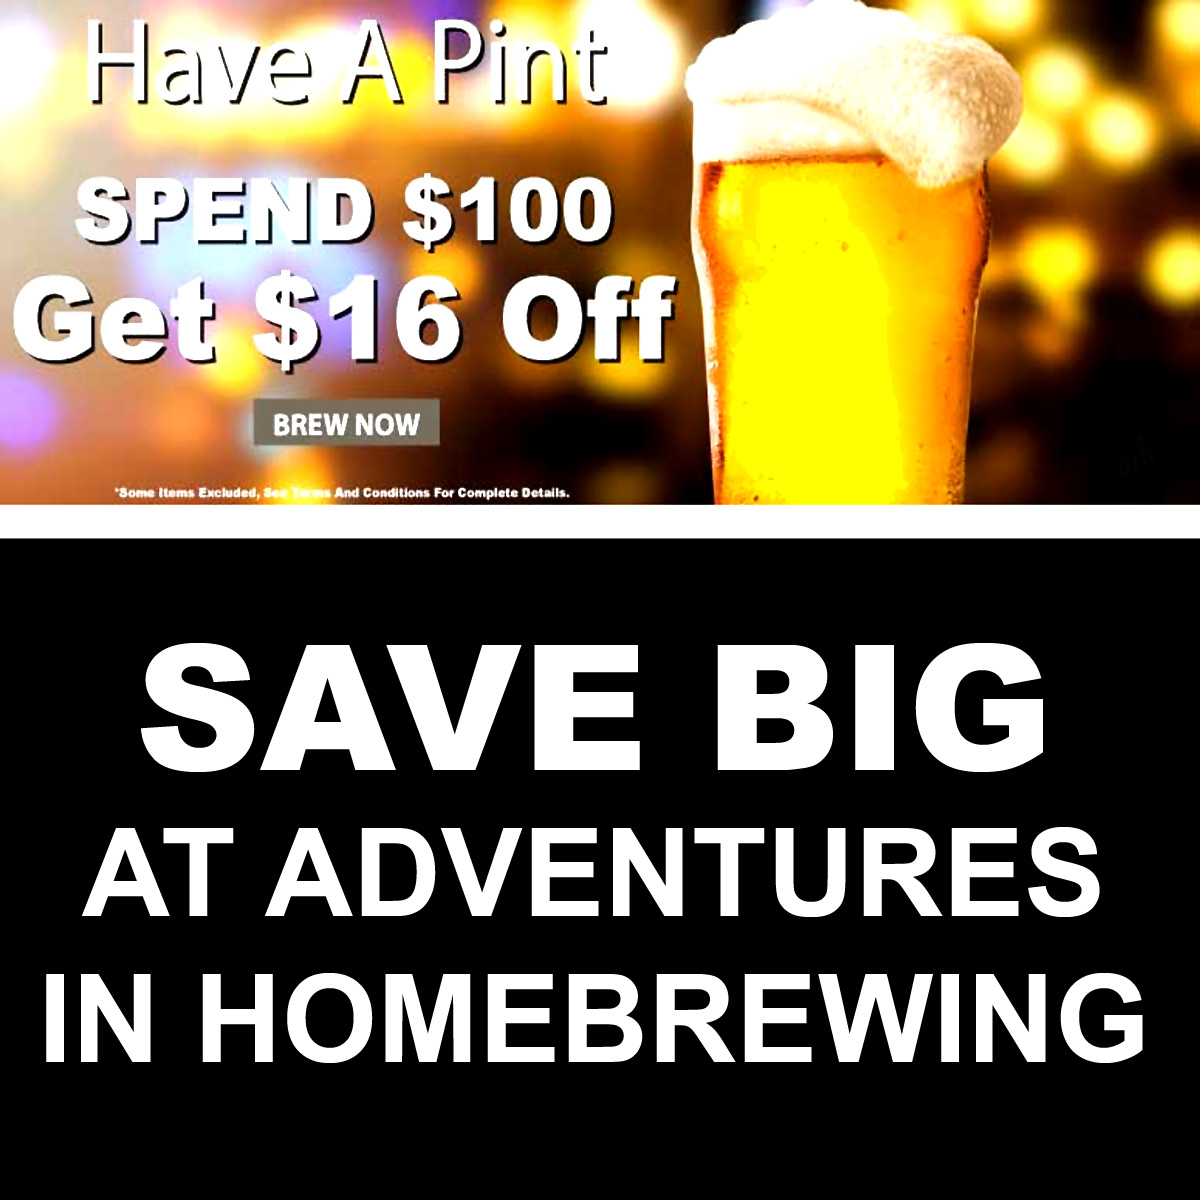 Home Wine Making Coupon Codes for Spend $100 And Get $16 Off at Adventures In Homebrewing Coupon Code